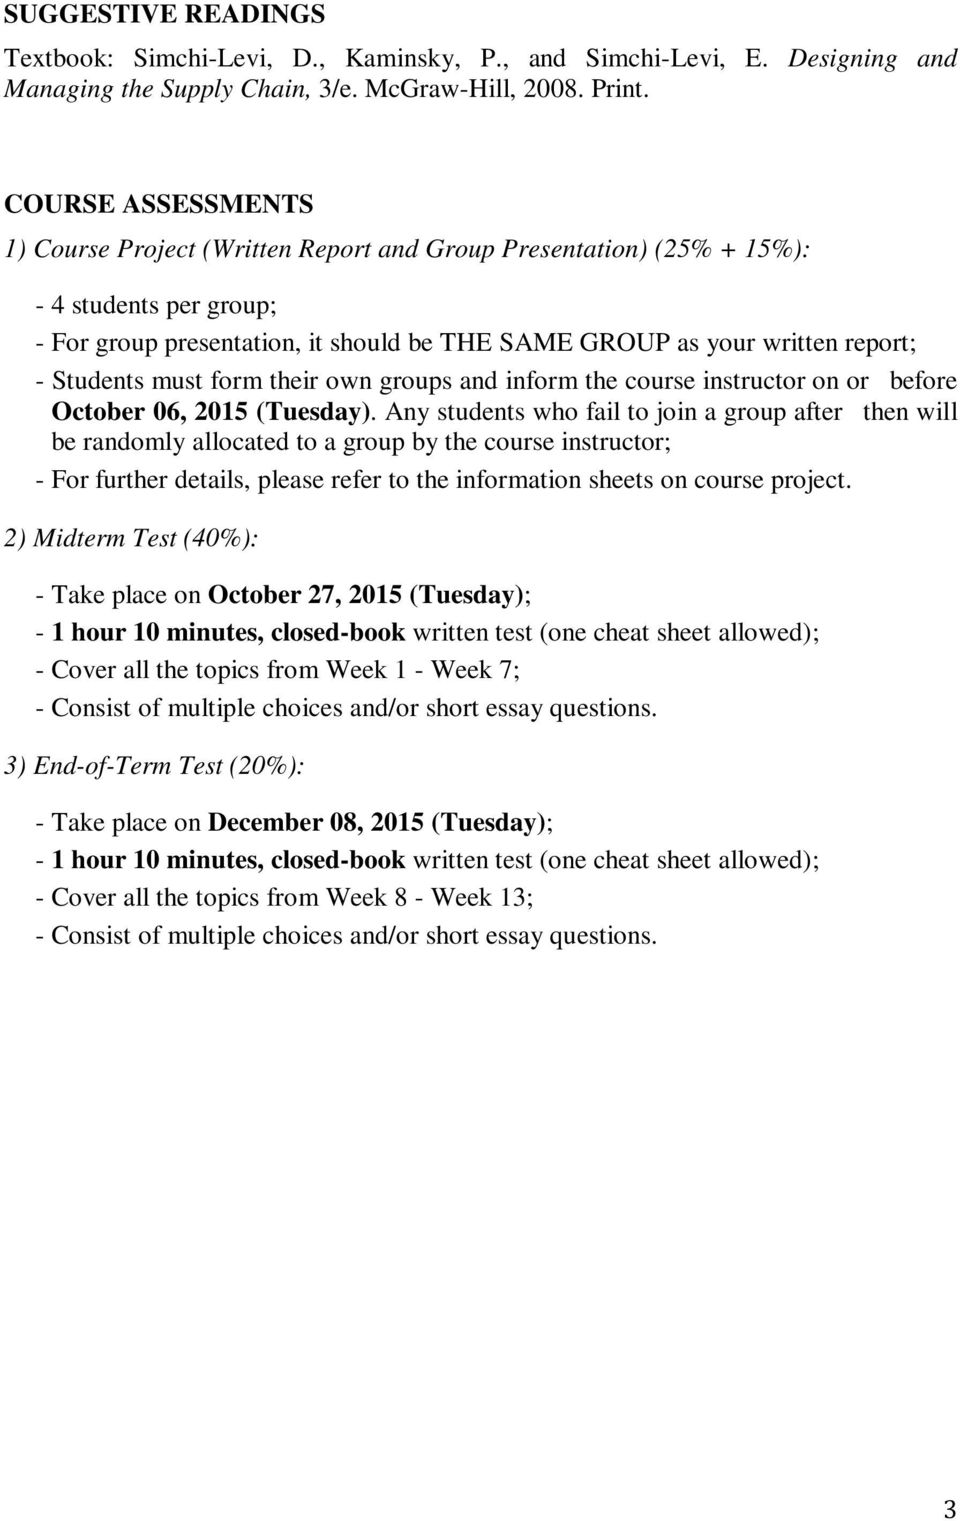 Students must form their own groups and inform the course instructor on or before October 06, 2015 (Tuesday).